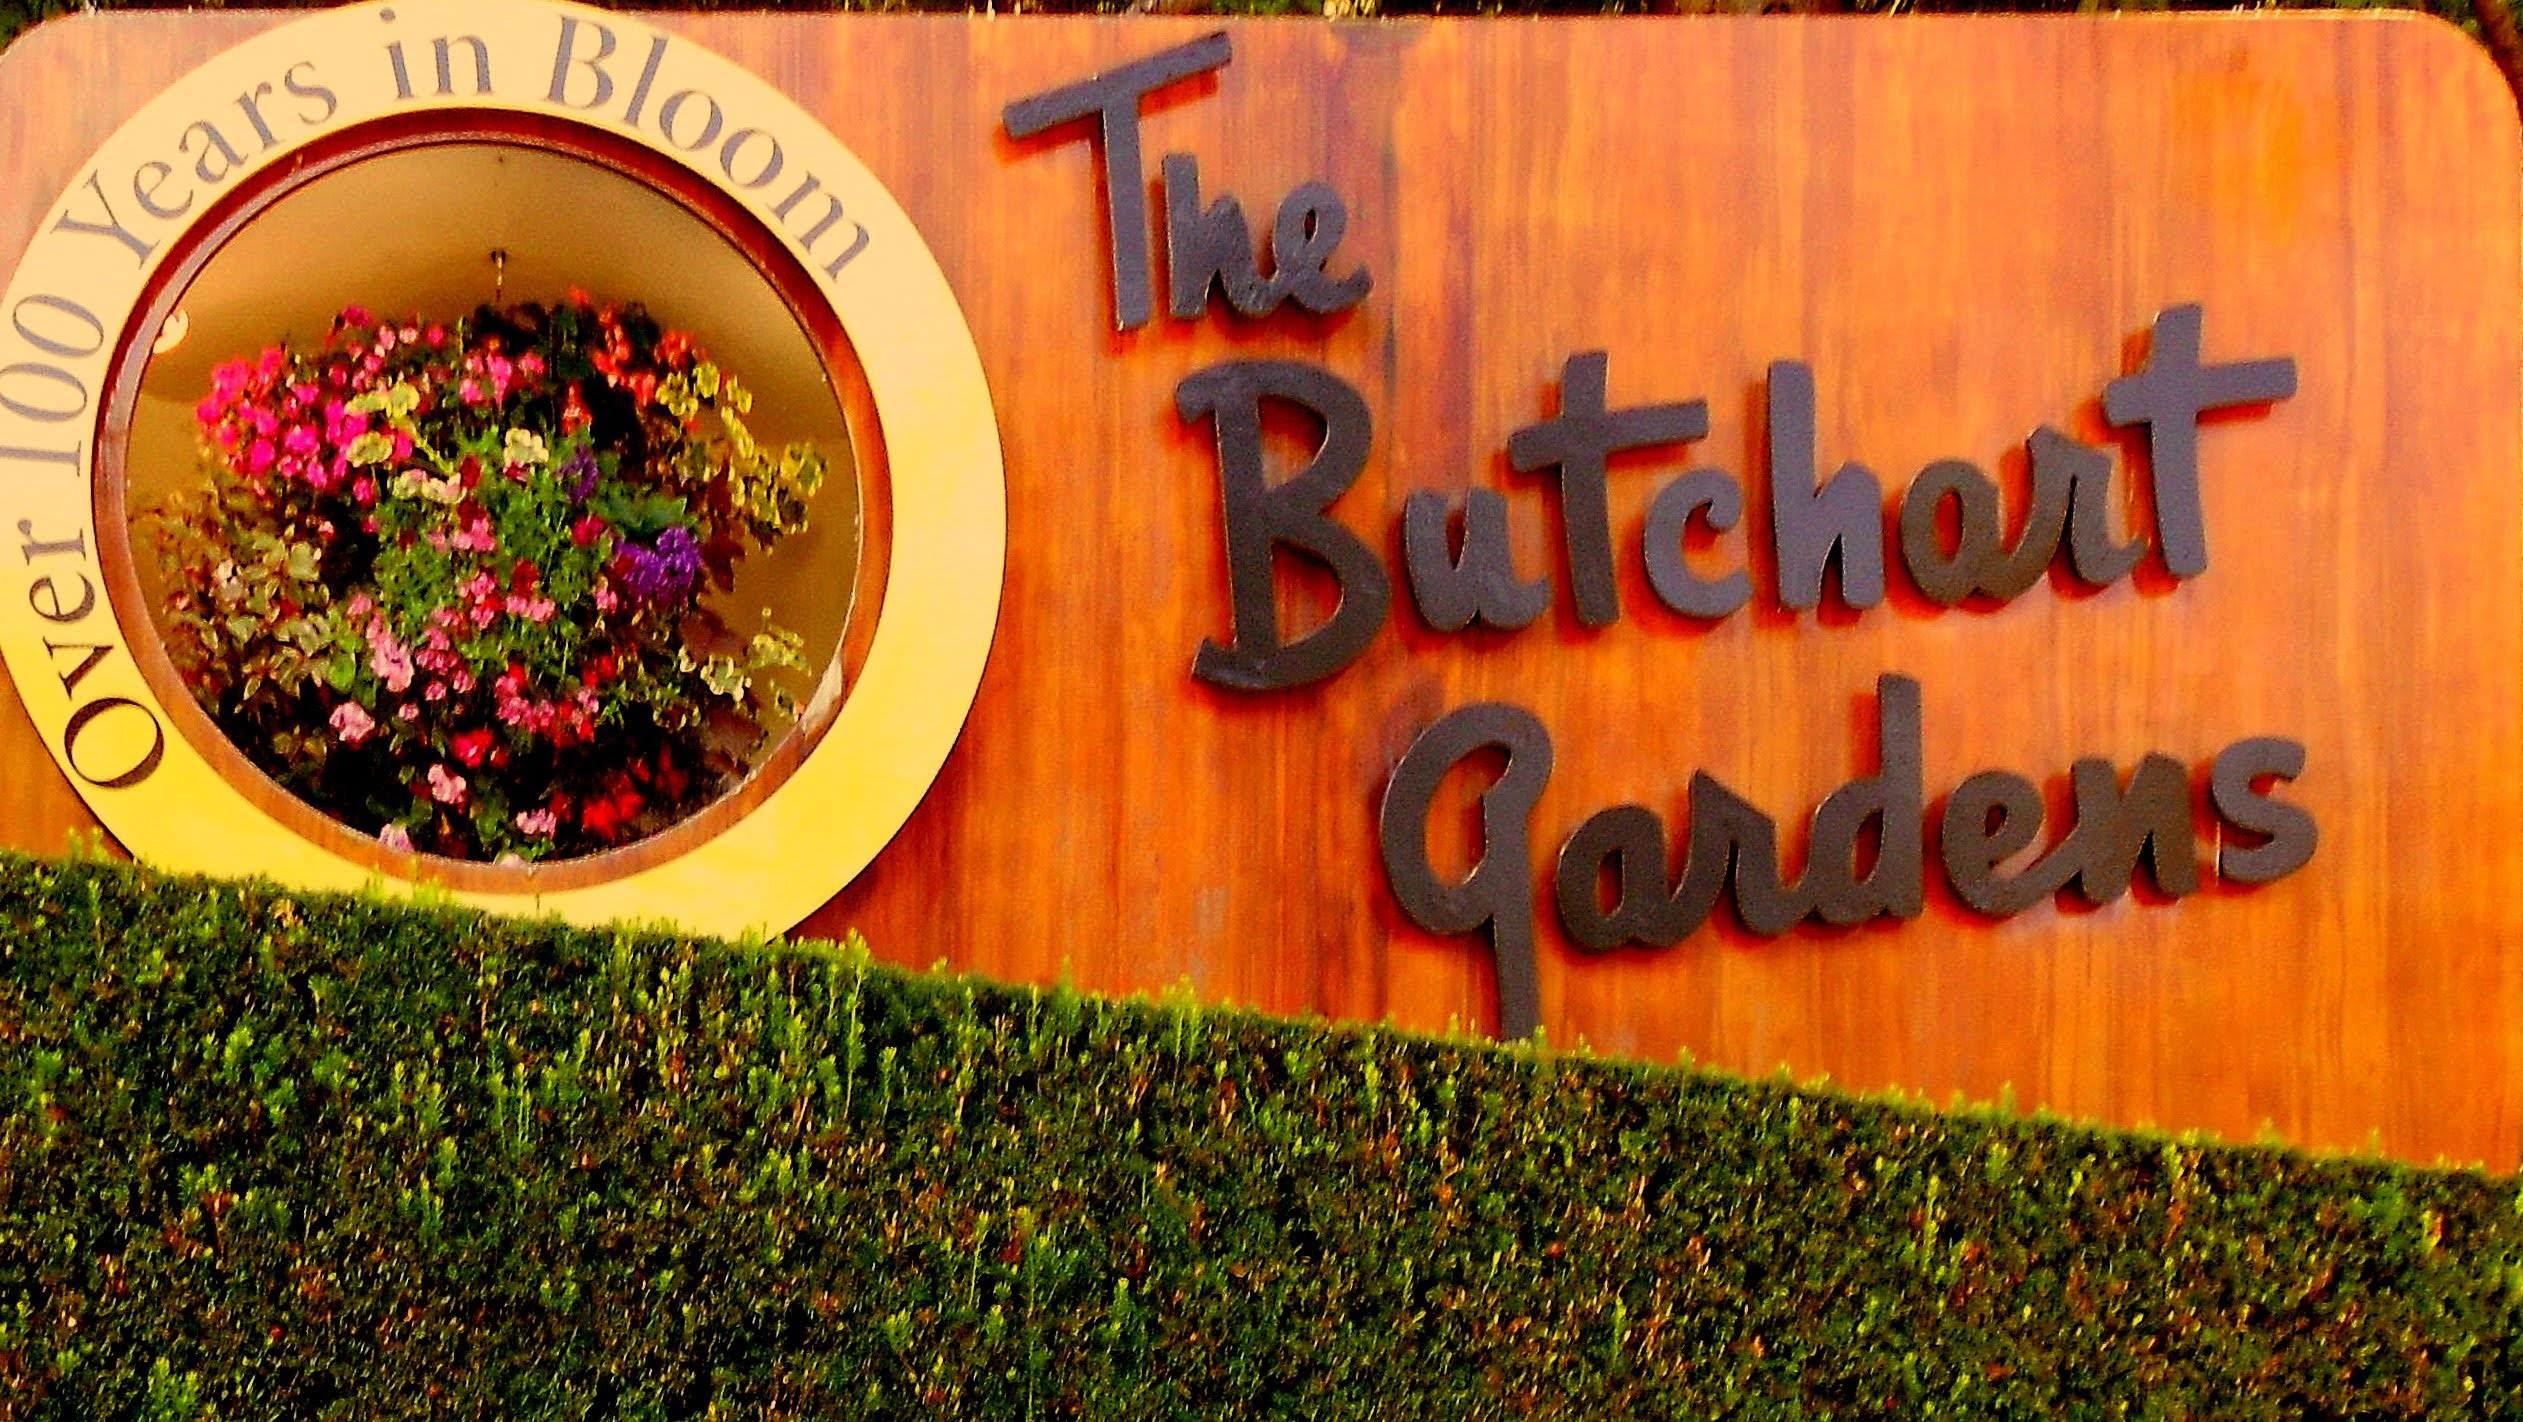 The Butchart Gardens – Victoria, British Columbia